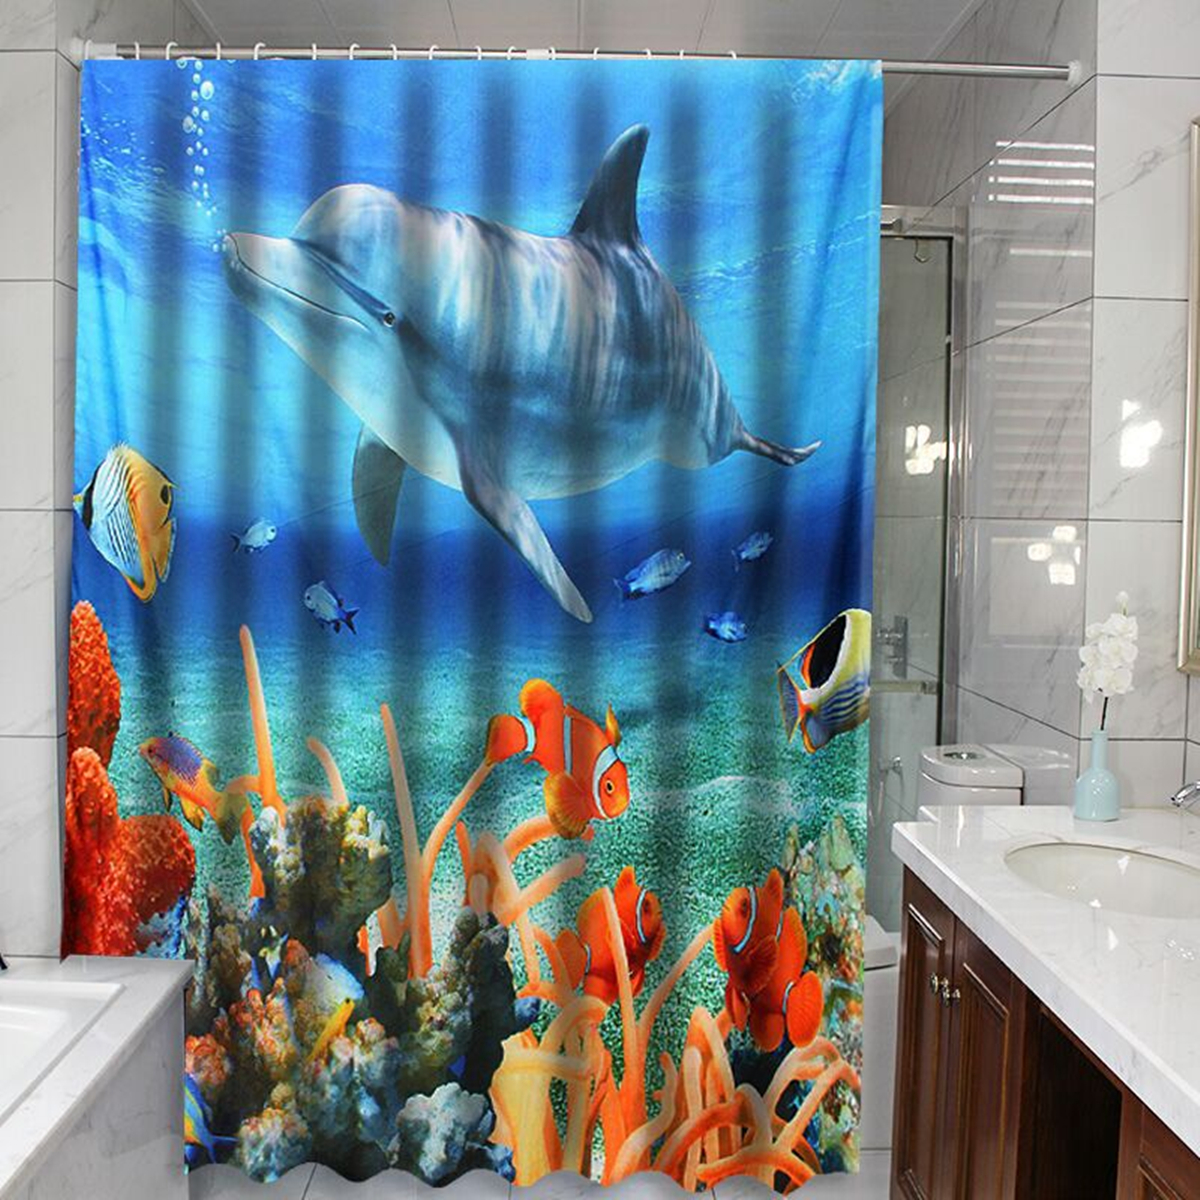 Garden Curtains Mermaids And Dolphin Under Sea Bathroom